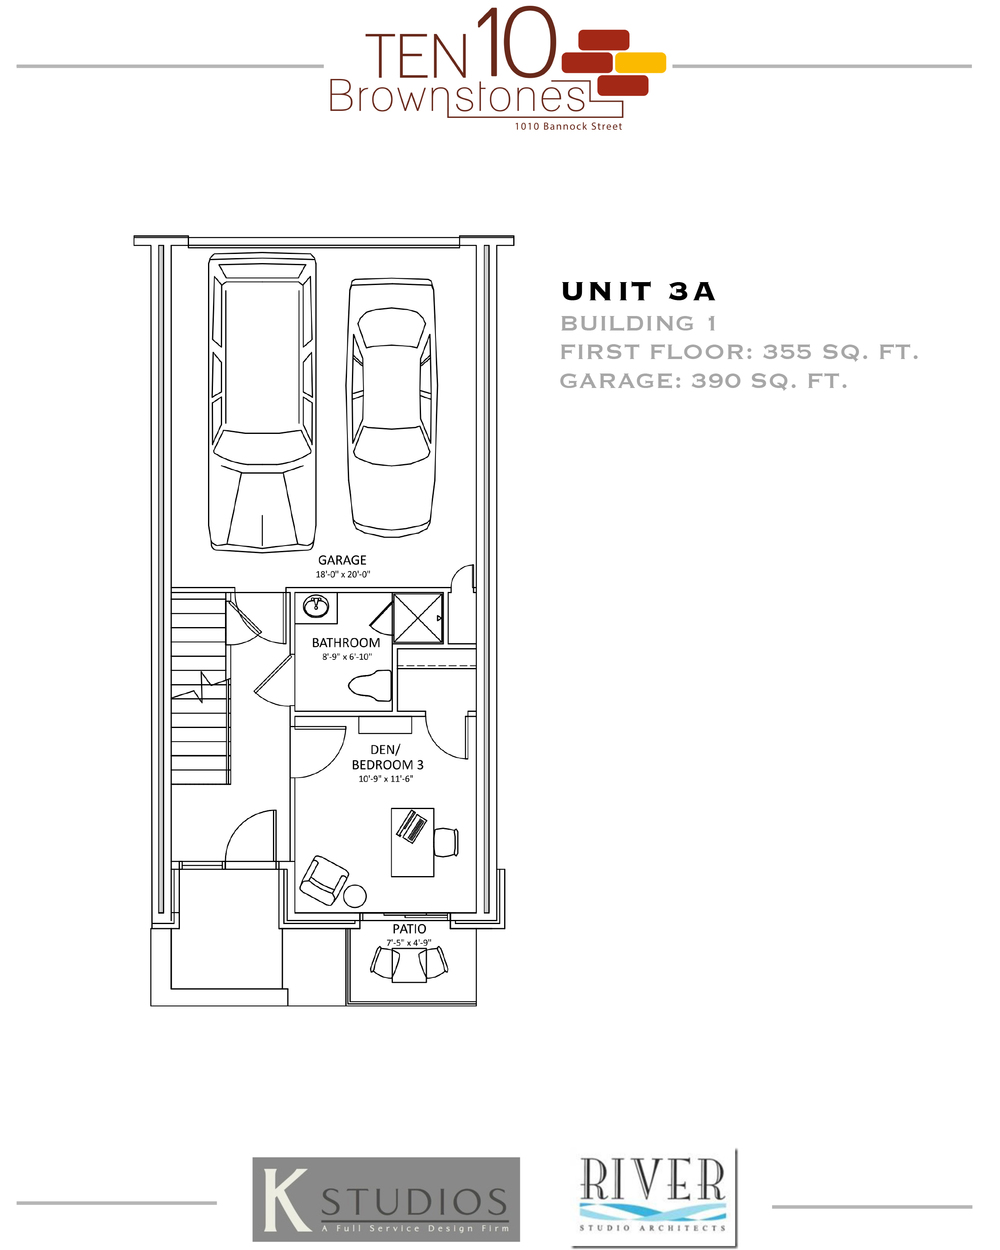 Click image to view & download Unit 3A floor plan